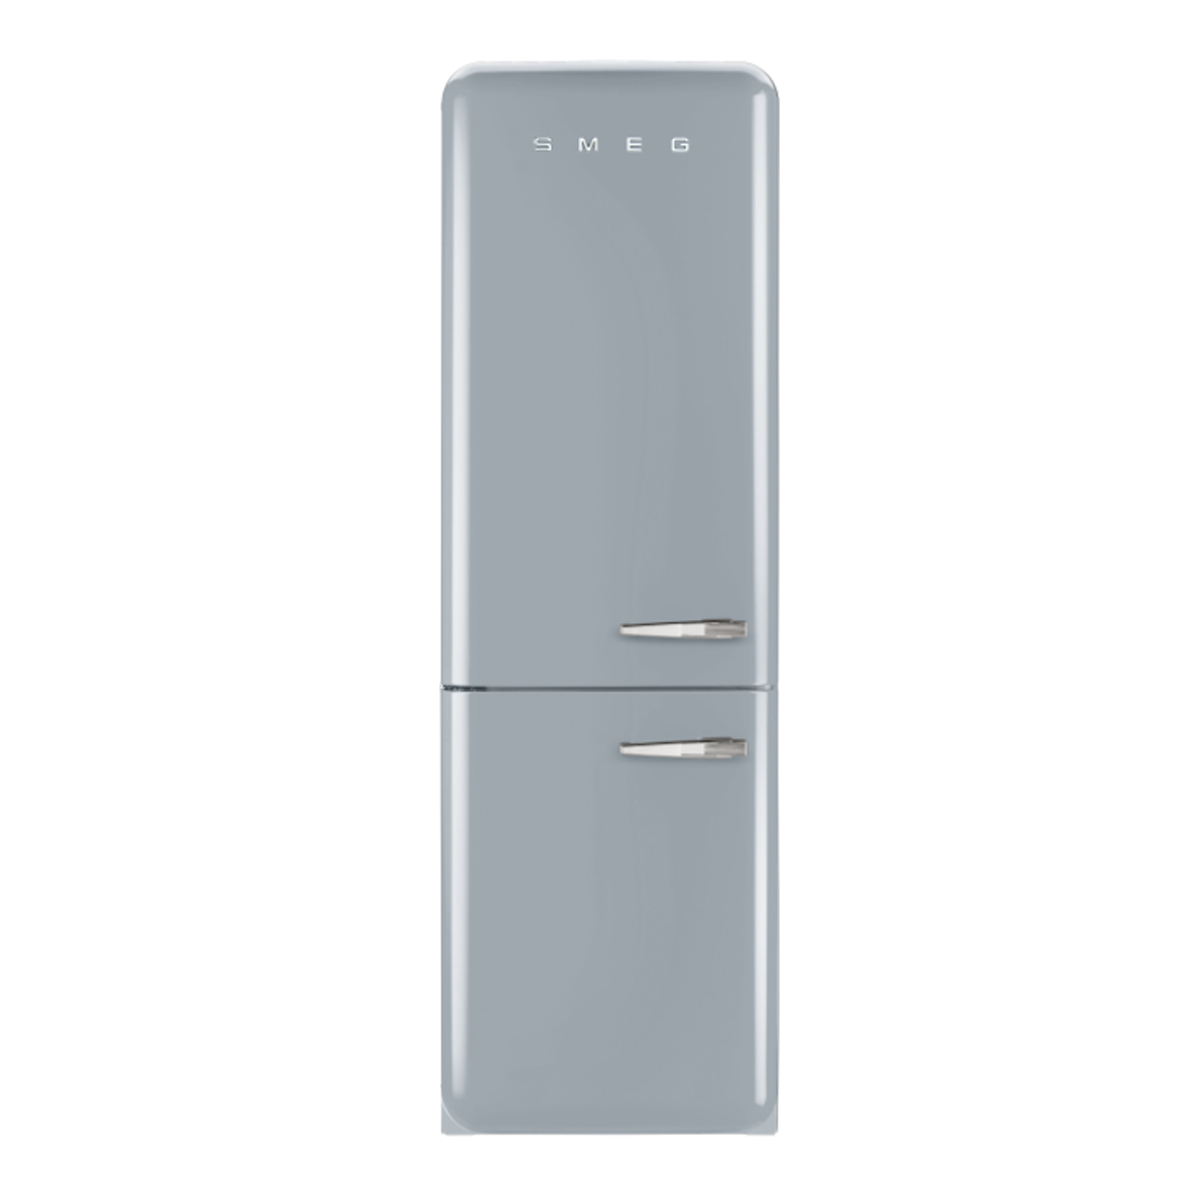 Smeg FAB32LSVNA1 326L Bottom Mount Fridge 64595